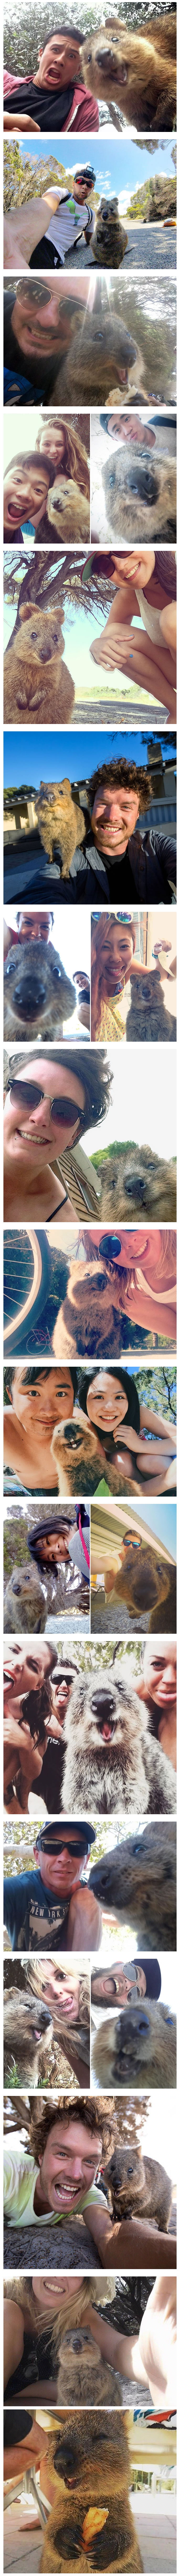 Australians Taking Selfies With Quokkas